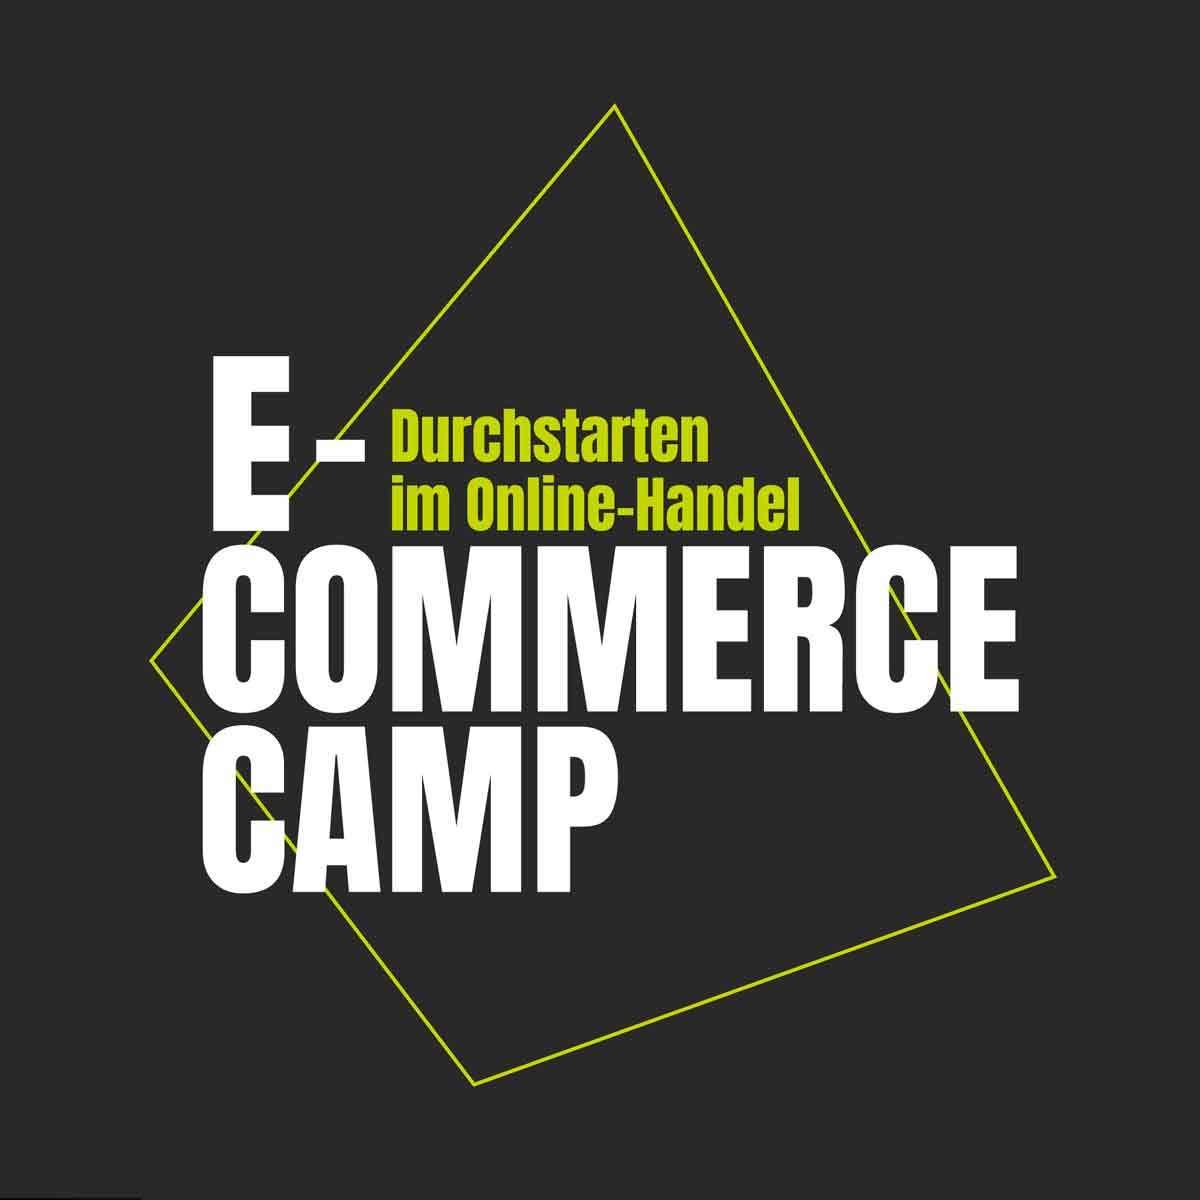 E-Commerce-Camp